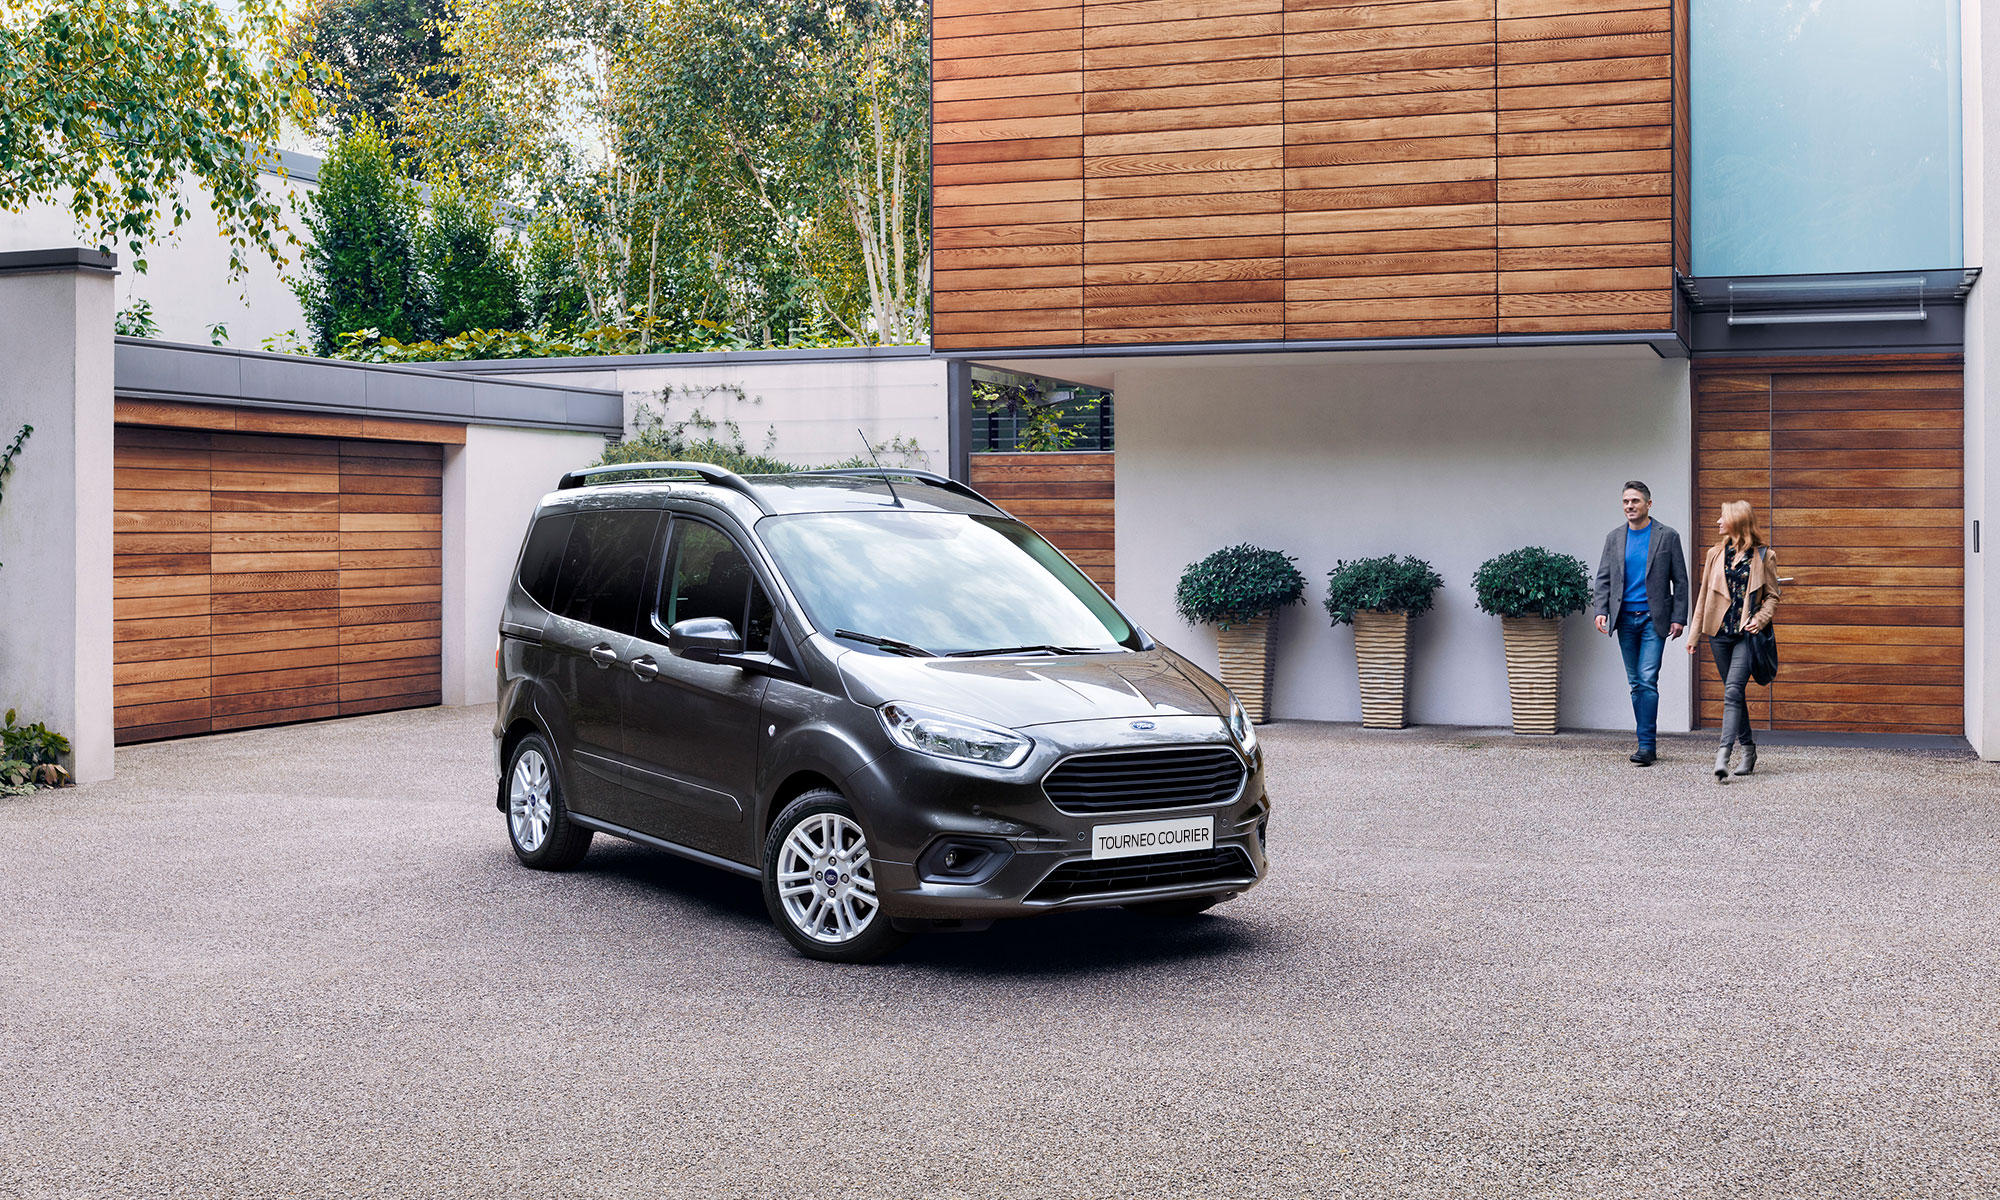 Der Neue Ford Tourneo Courier